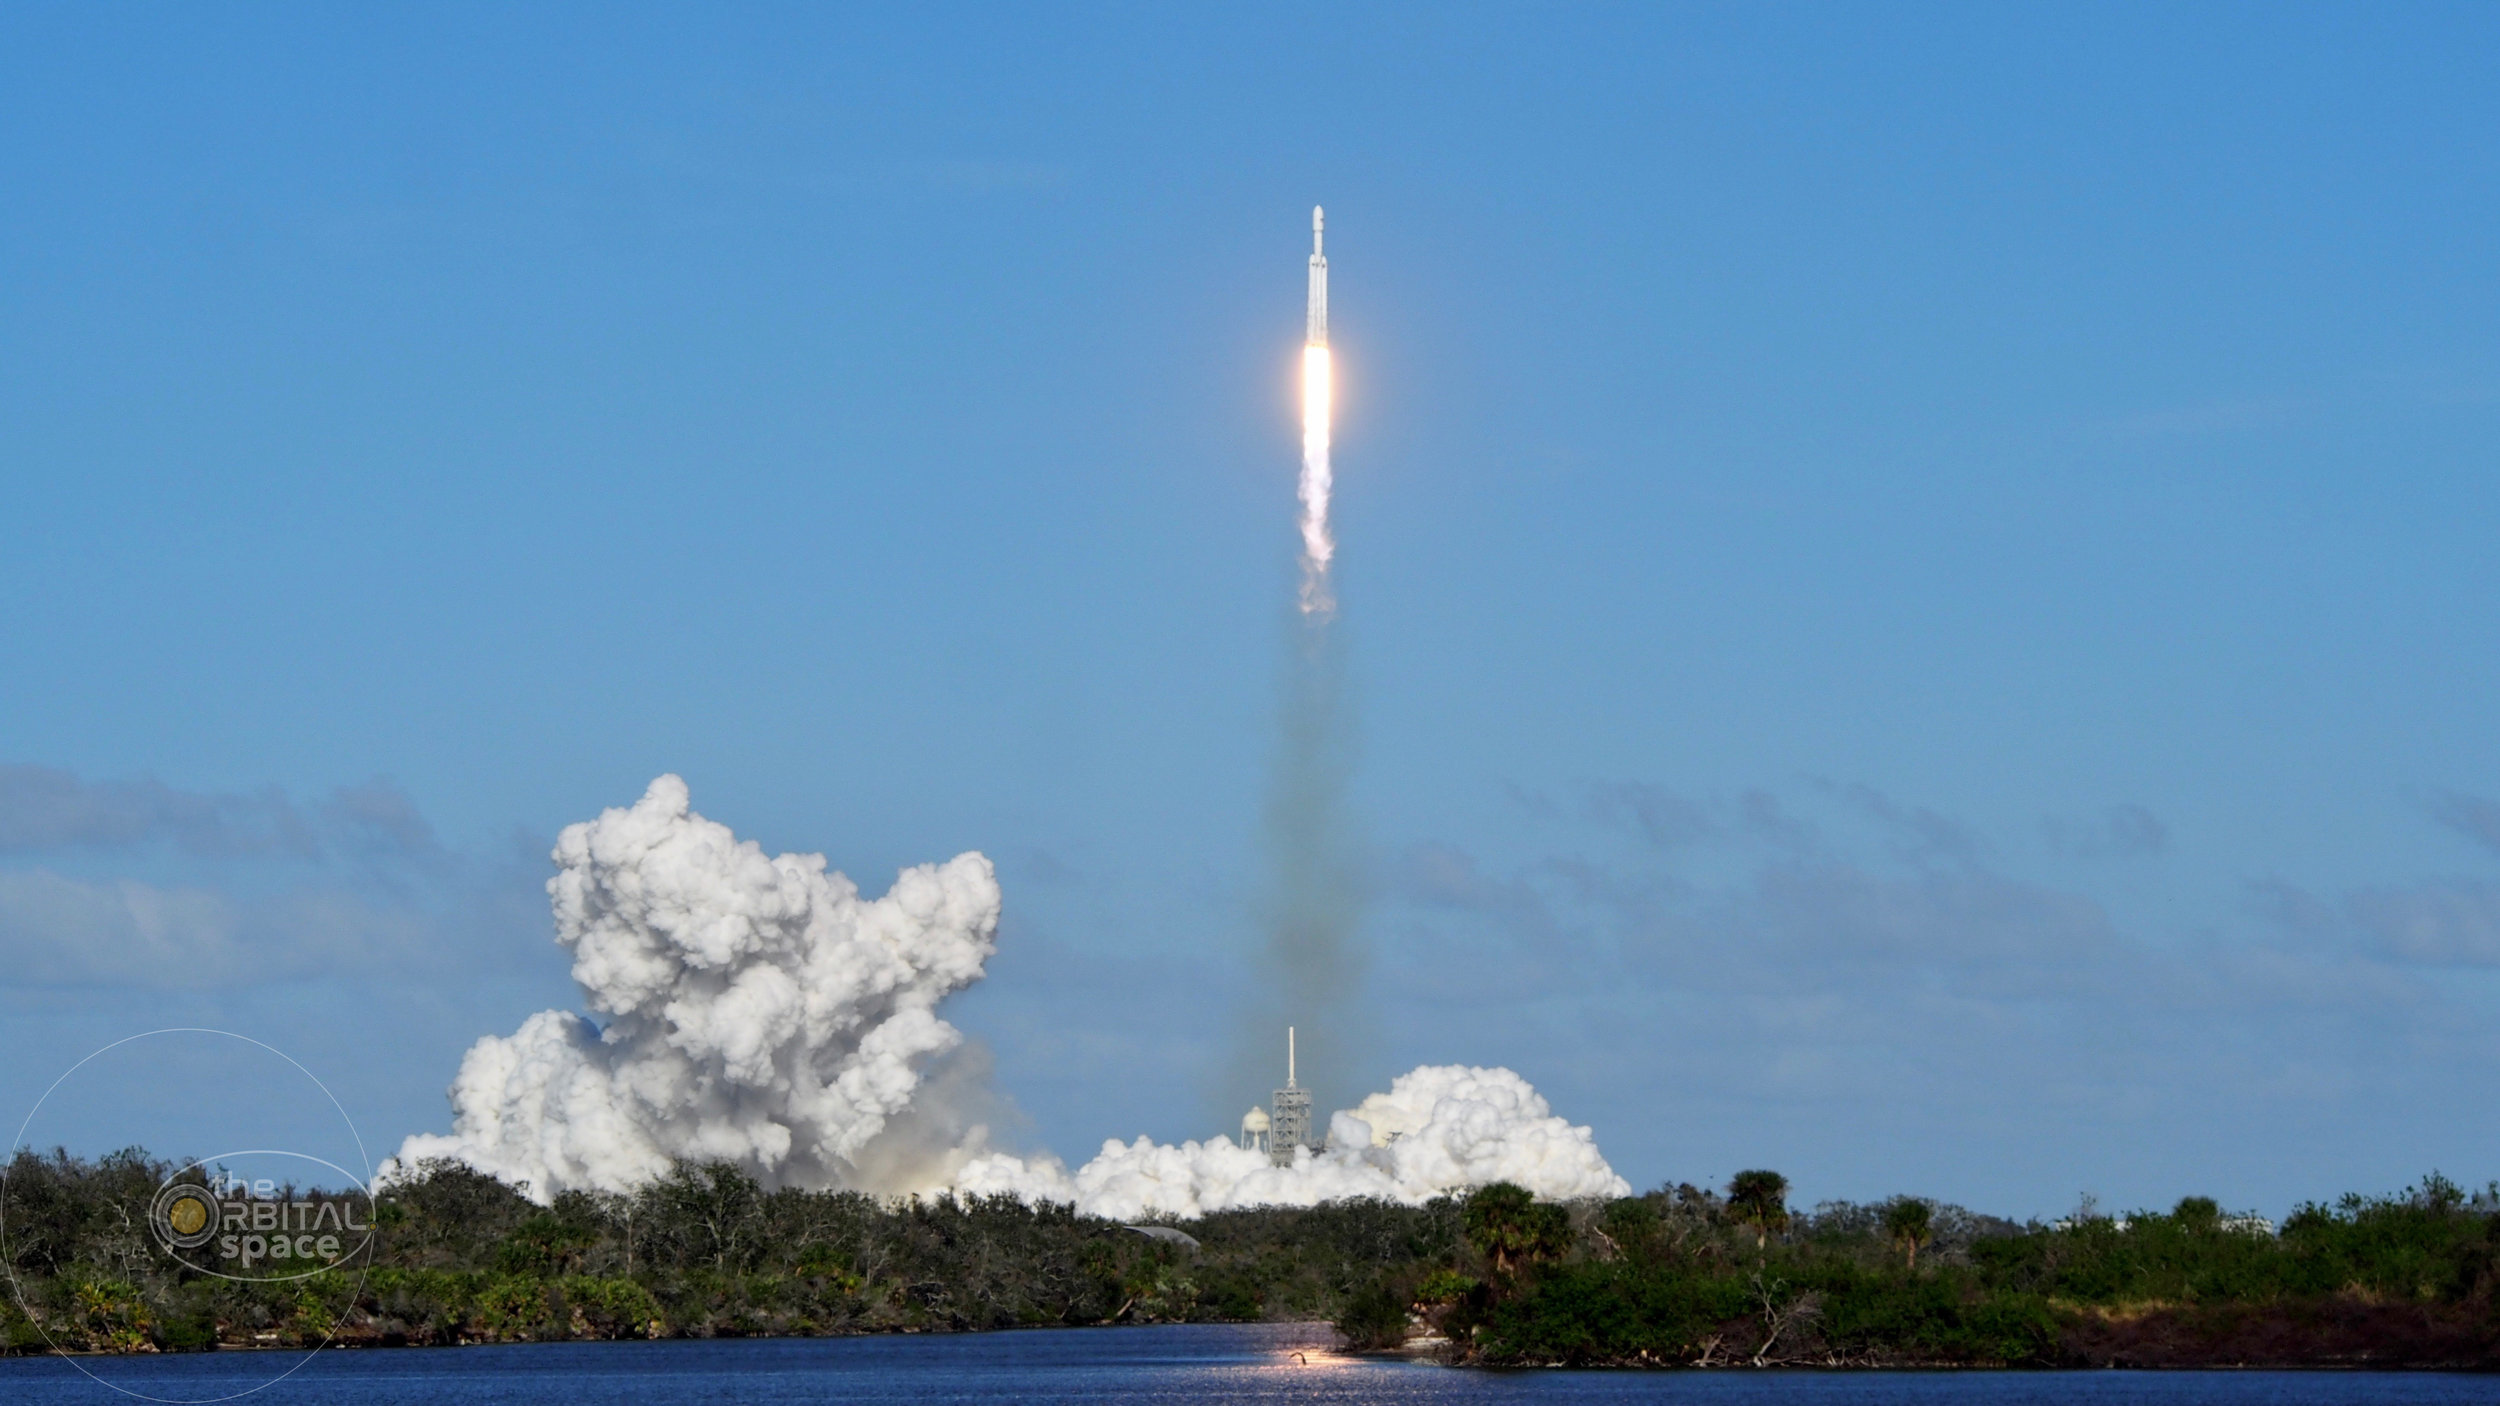 Falcon Heavy - See photographs from the maiden voyage of SpaceX's most powerful rocket.